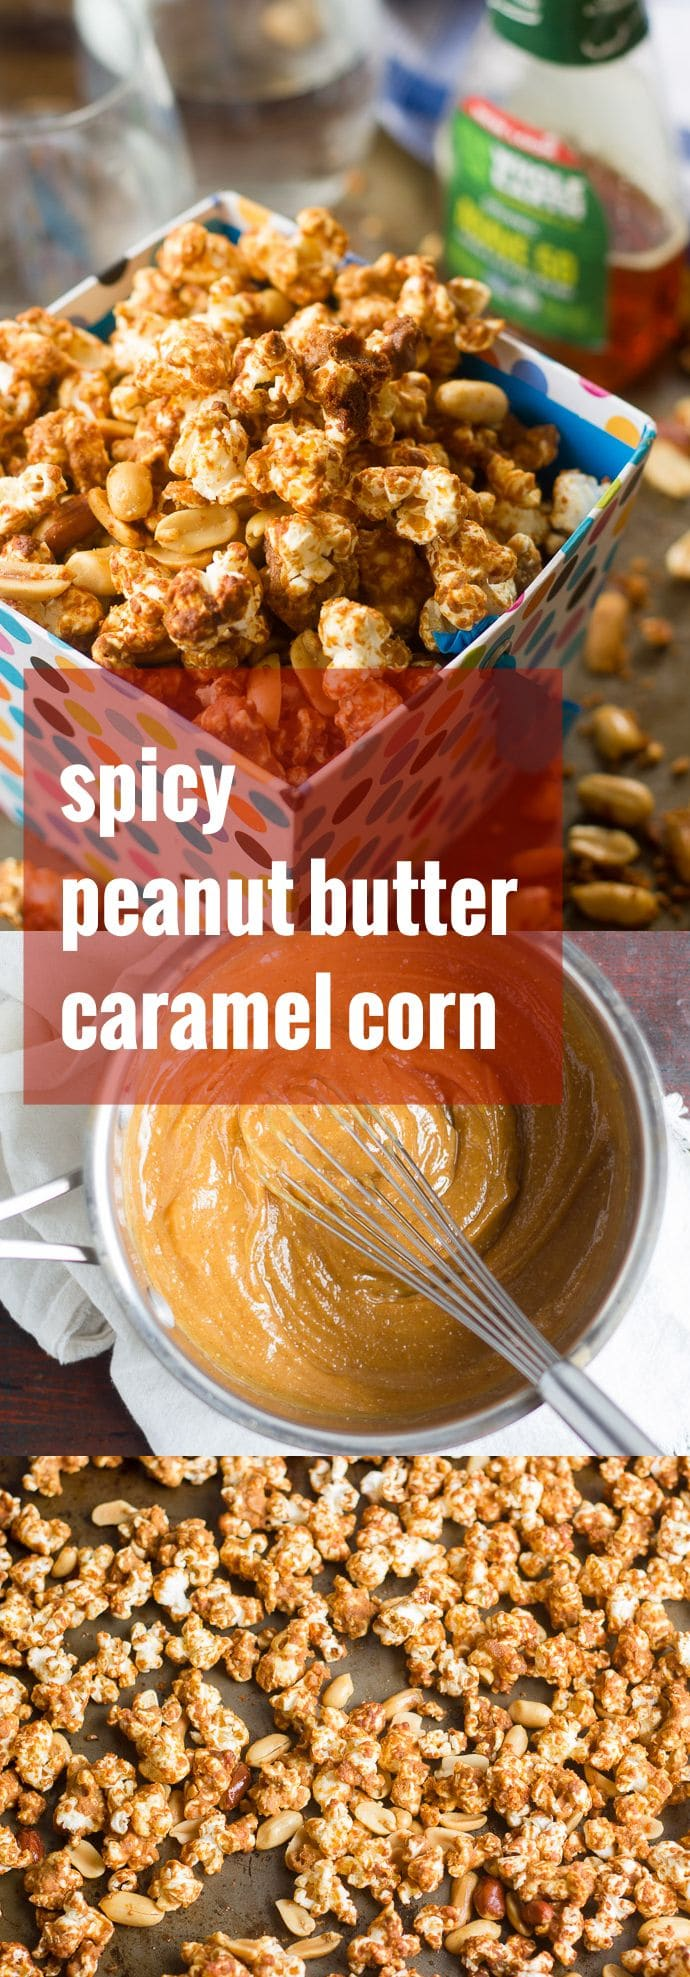 spicy-peanut-butter-caramel-corn-pin